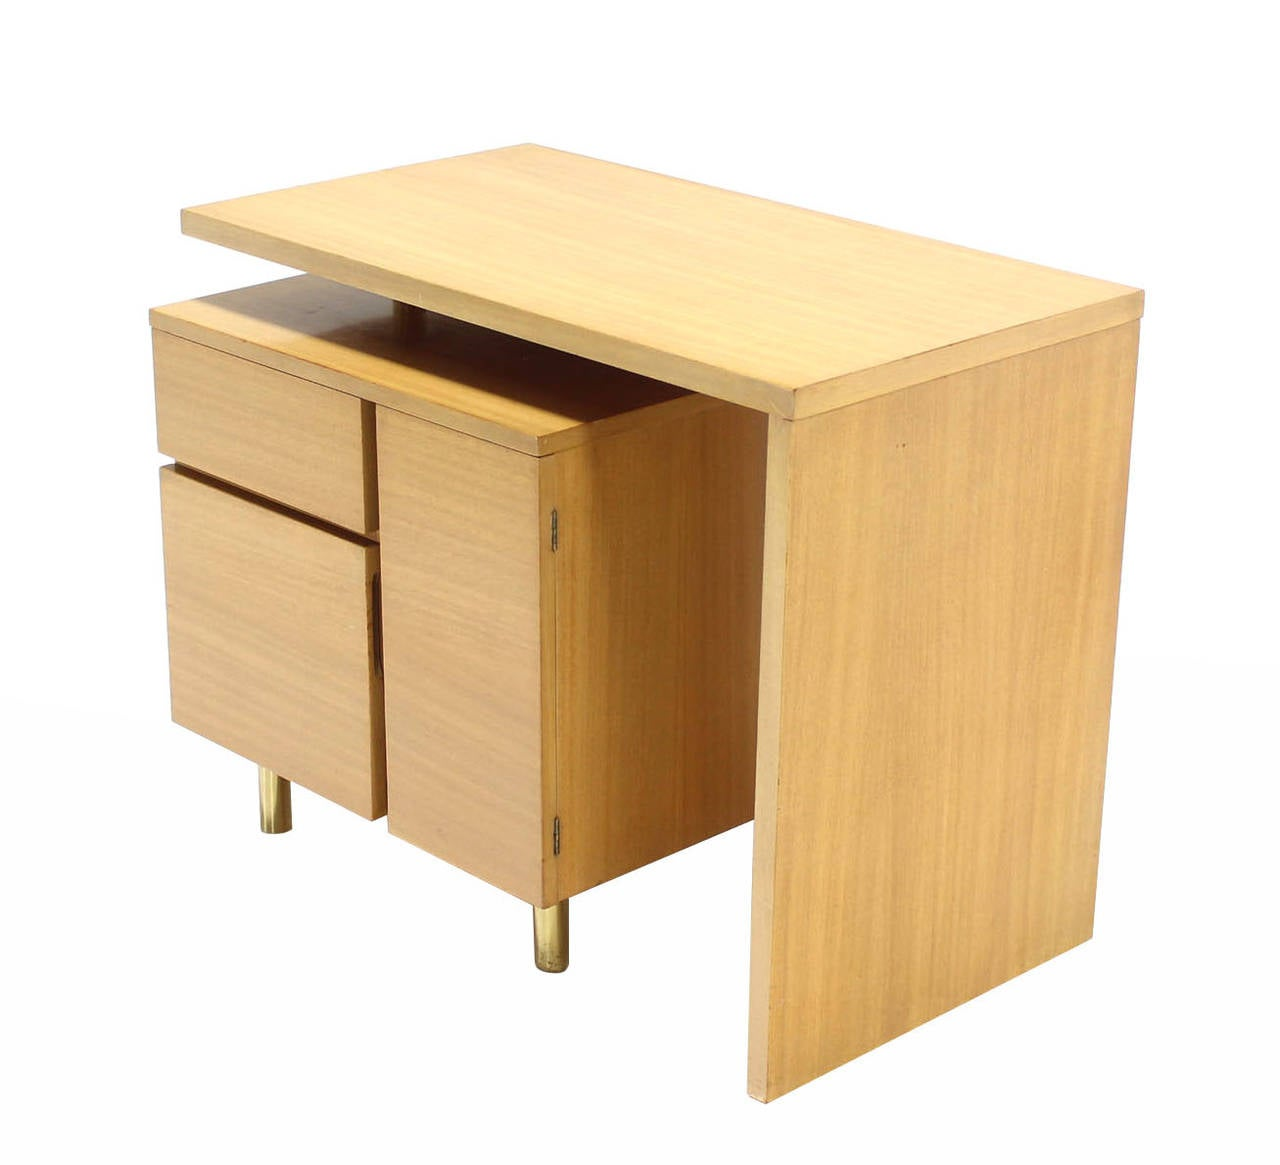 Famous revolving folding Mid-Century Modern desk in blond birch.